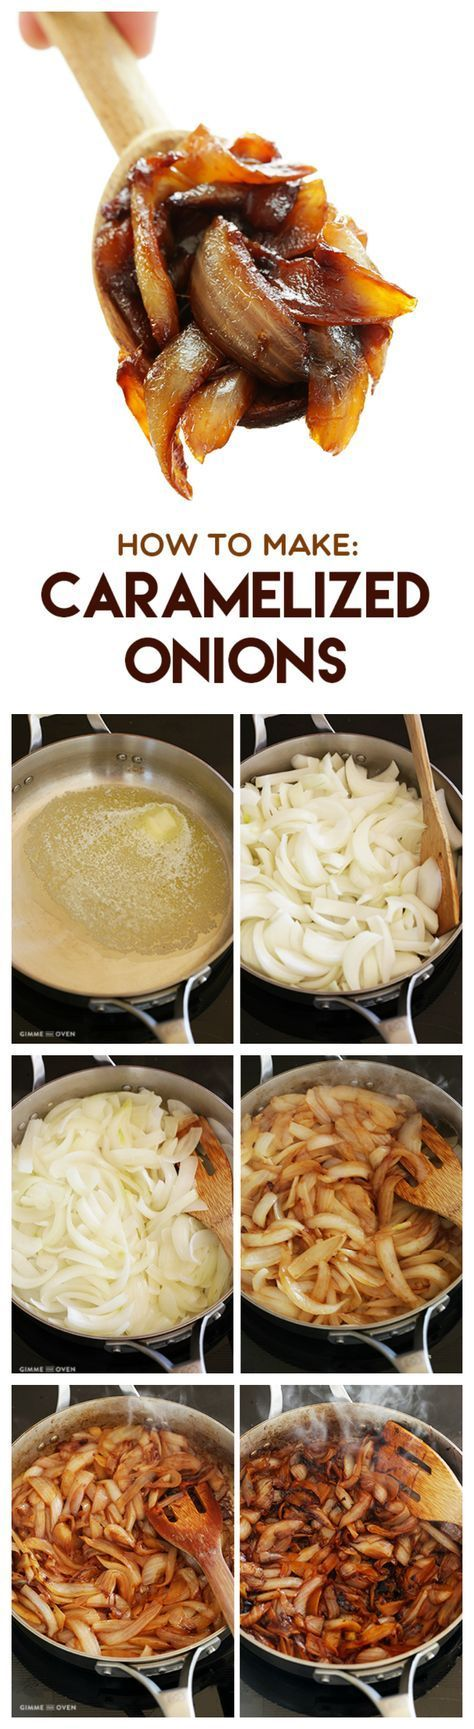 If you're like me, onions make the burger. Here's a great method for creating perfectly caramelized Onions for your favorite burger recipe! How To Make Caramelized Onions -- a step-by-step photo tutorial and recipe